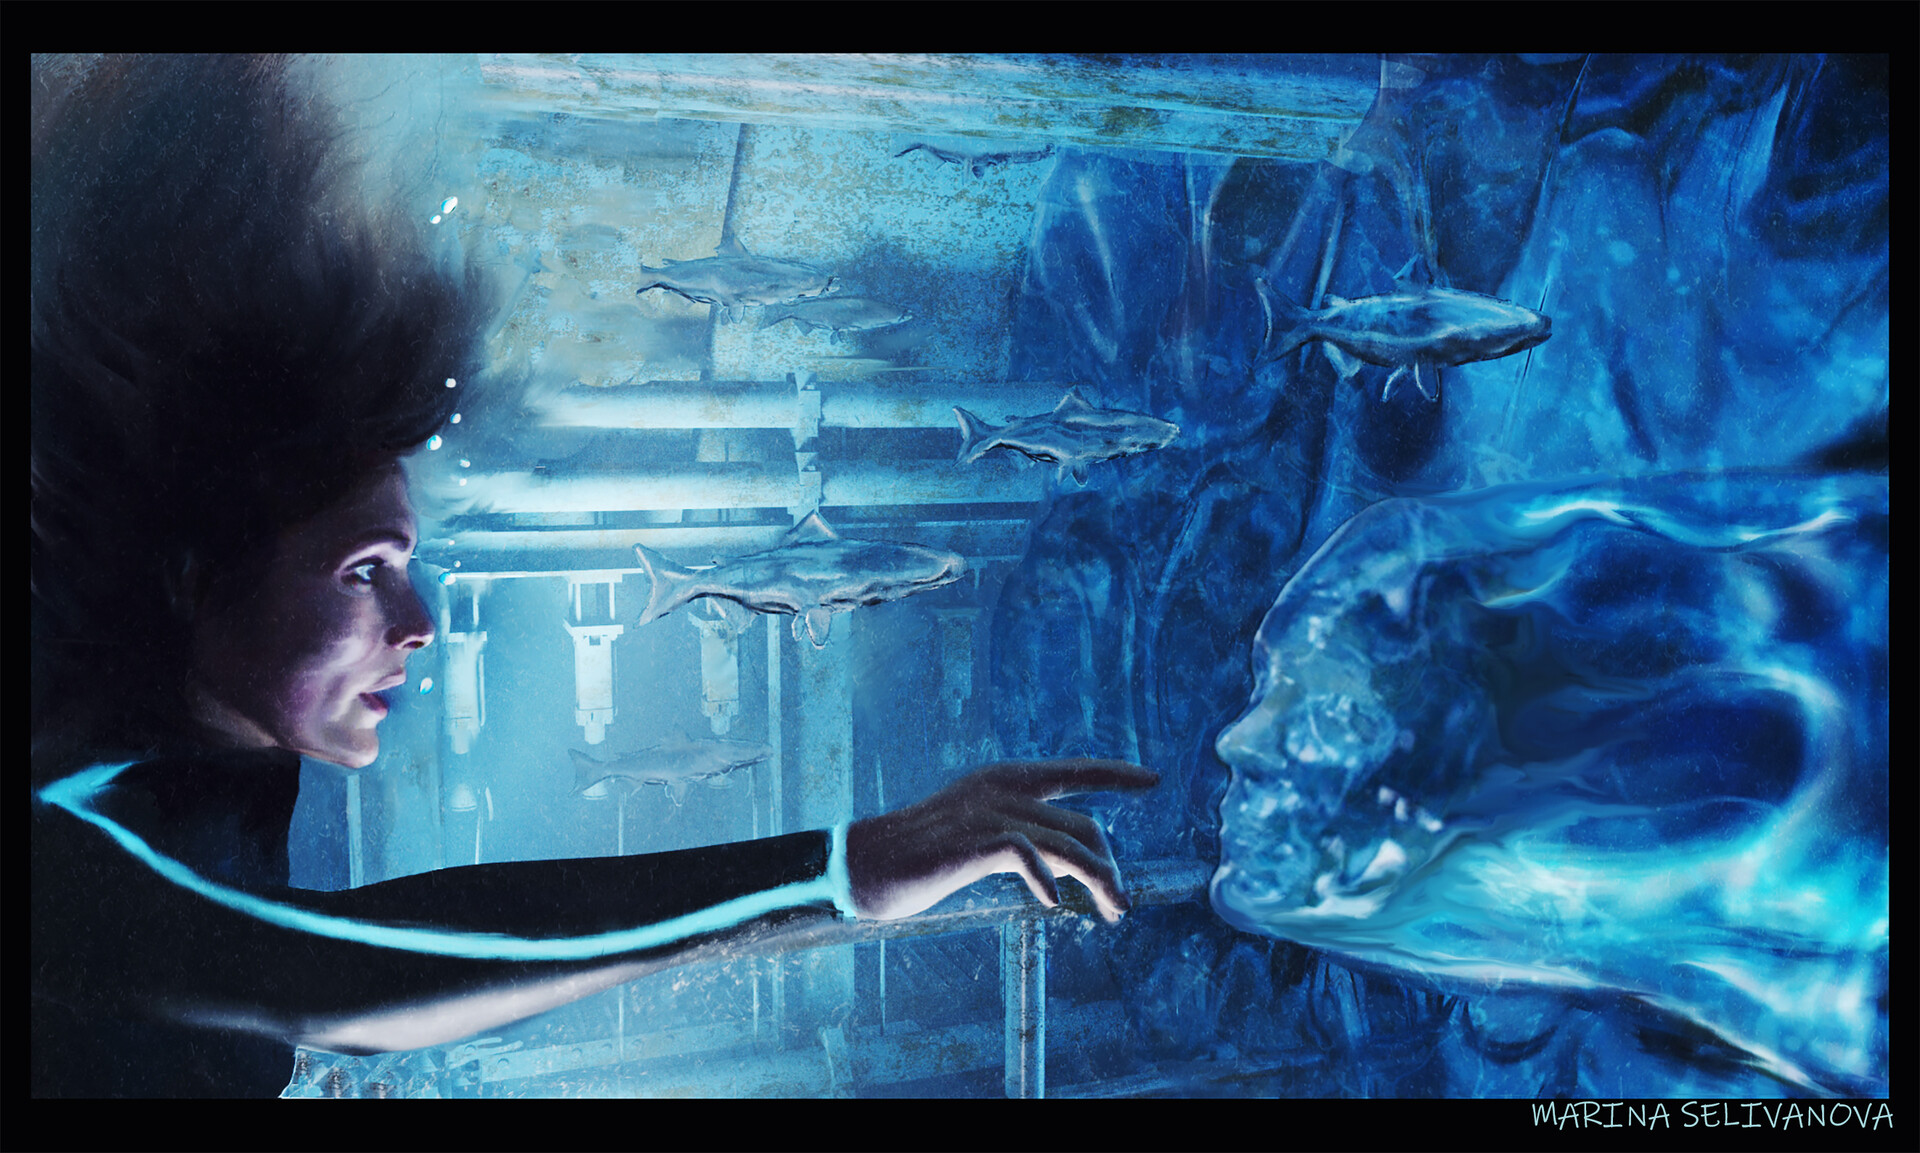 The alien being enters the water column to the heroine and takes on the image of the heroine.